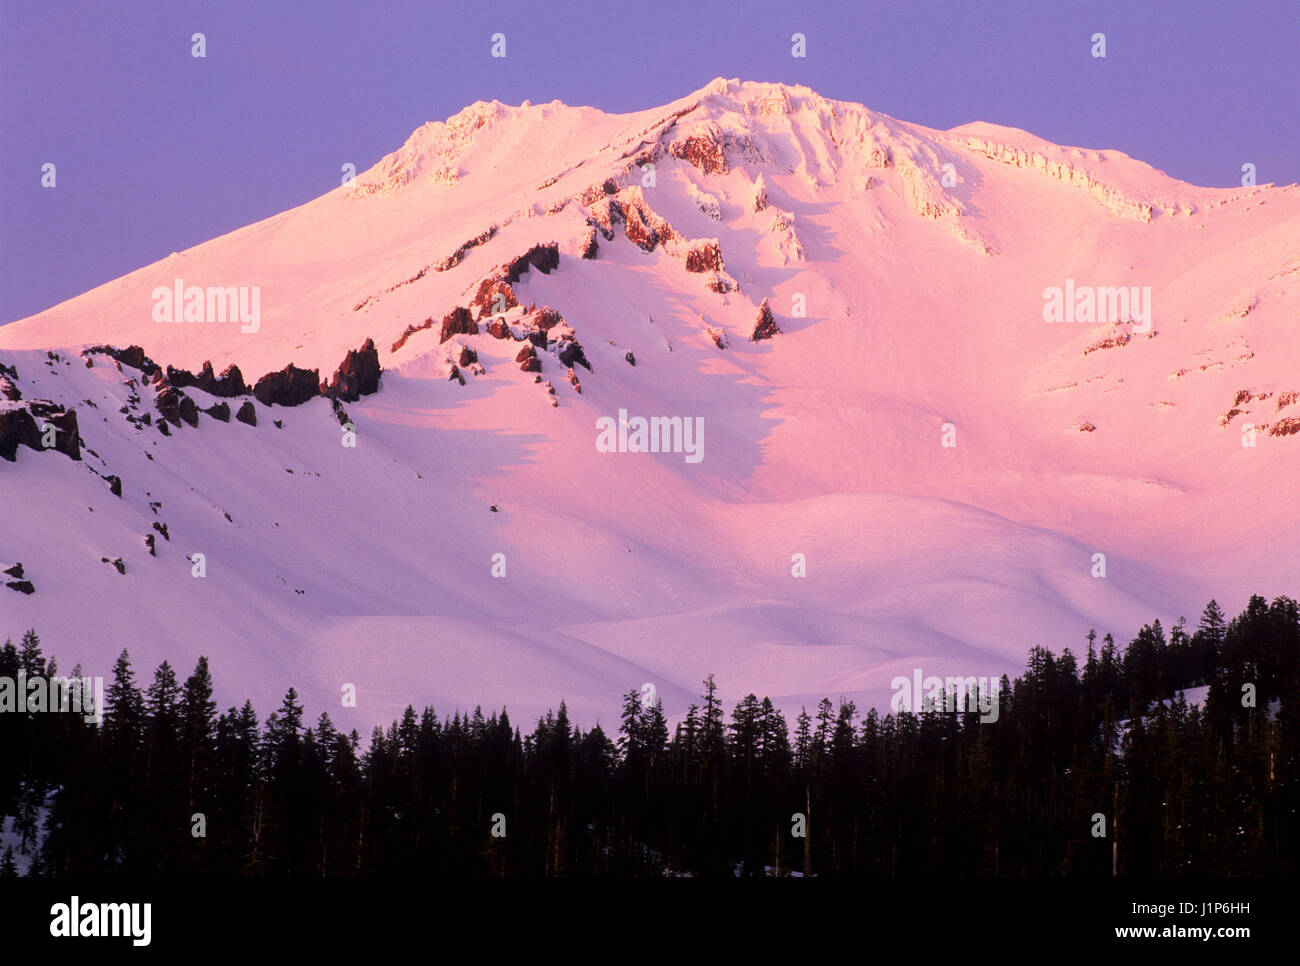 Mount Shasta from Bunny Flat, Shasta-Trinity National Forest, California - Stock Image